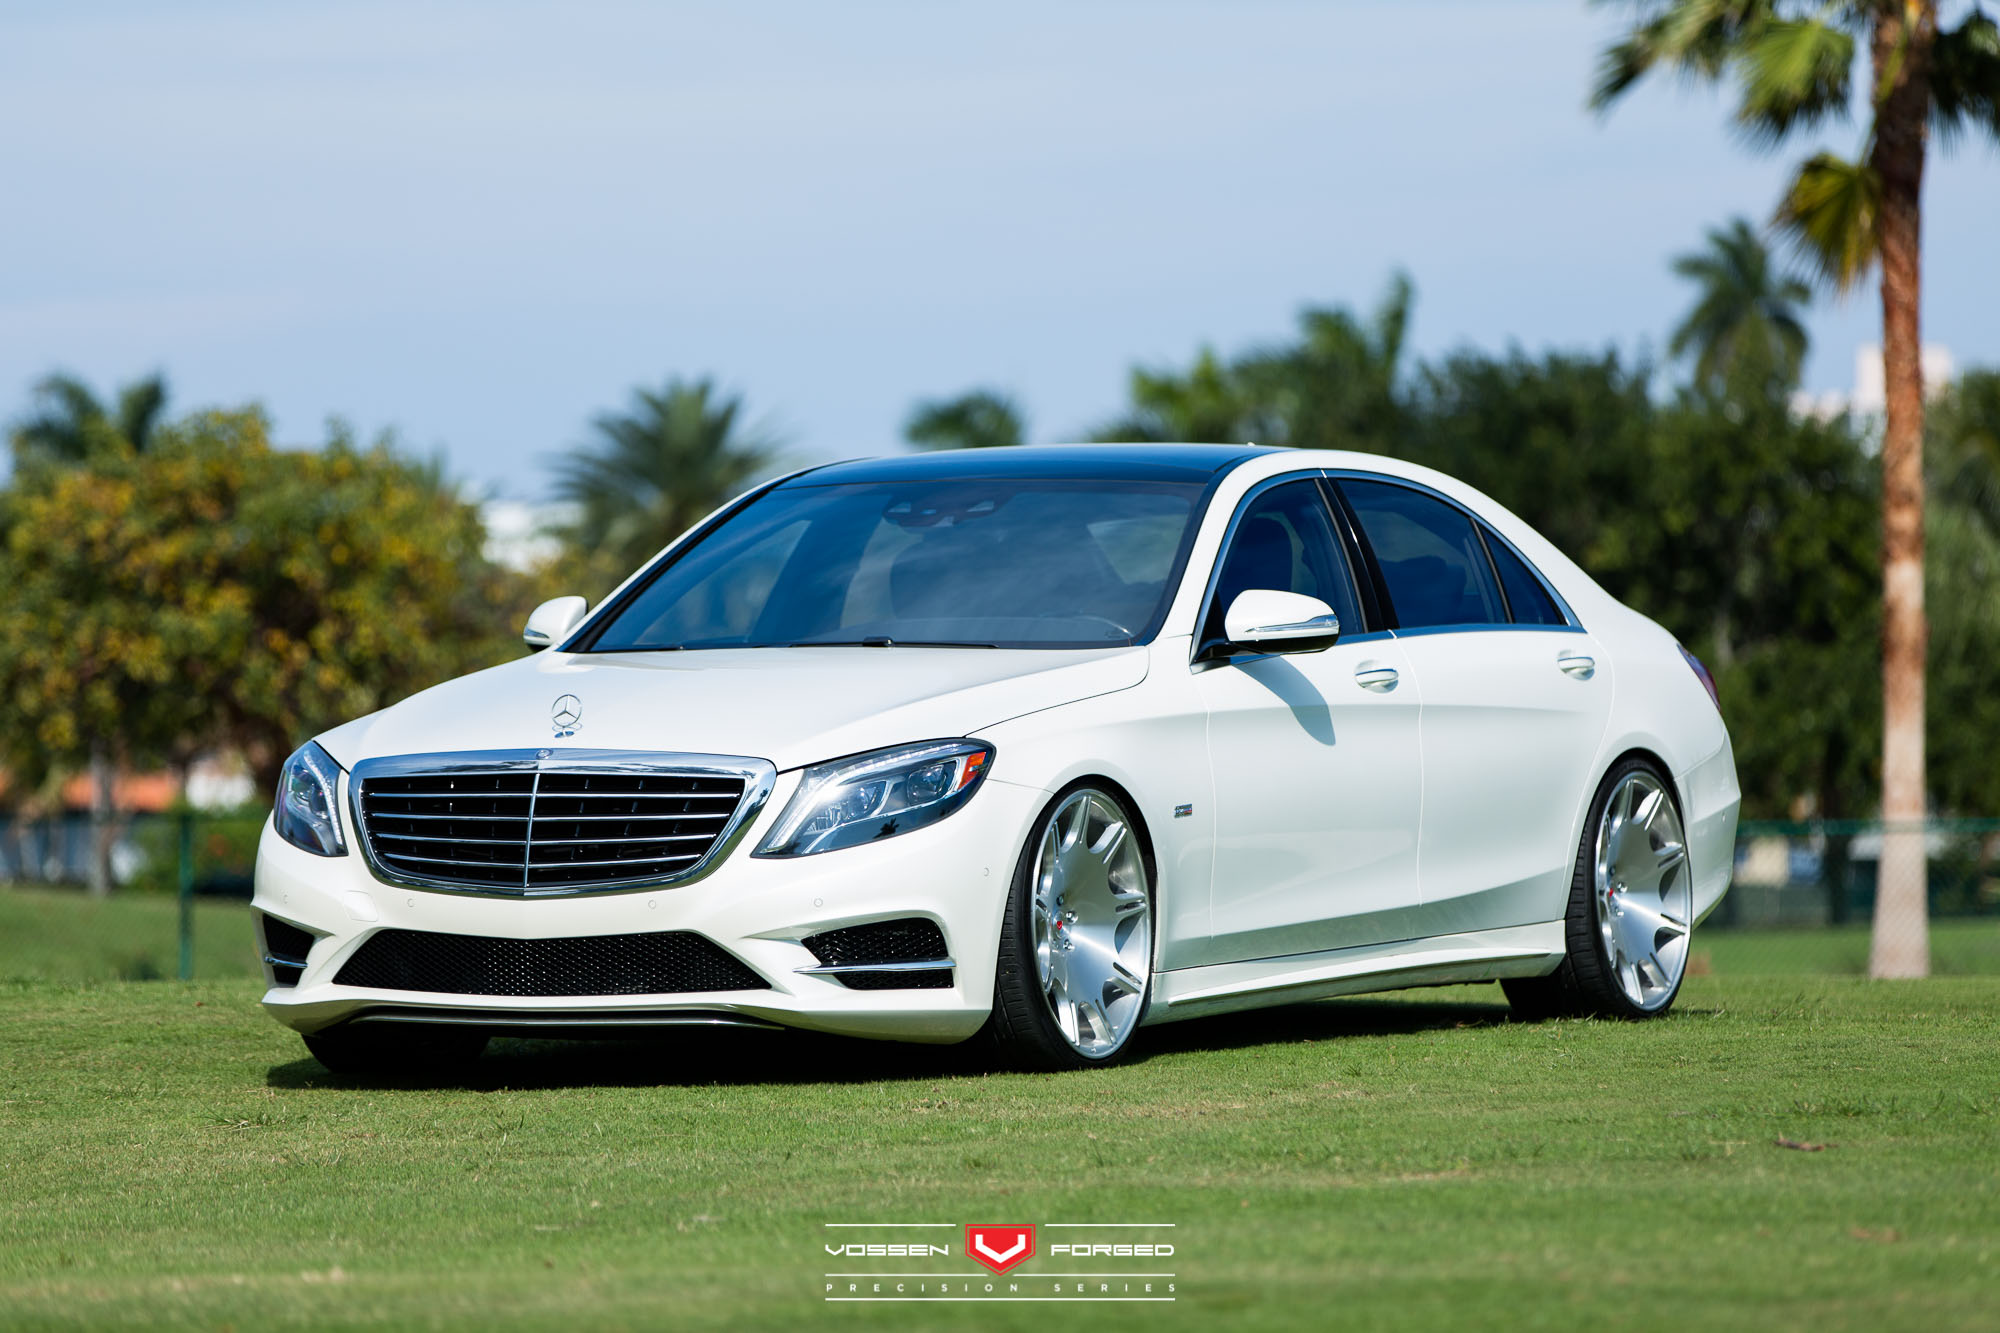 532584 Stock E350 Amg moreover Mercedes Benz S205 On R20 Vossen Cvt further Watch in addition File 2010 Mercedes Benz GL   2010 DC together with C63 Amg 2014 Coupe Wallpaper 5. on mercedes benz e350 2008